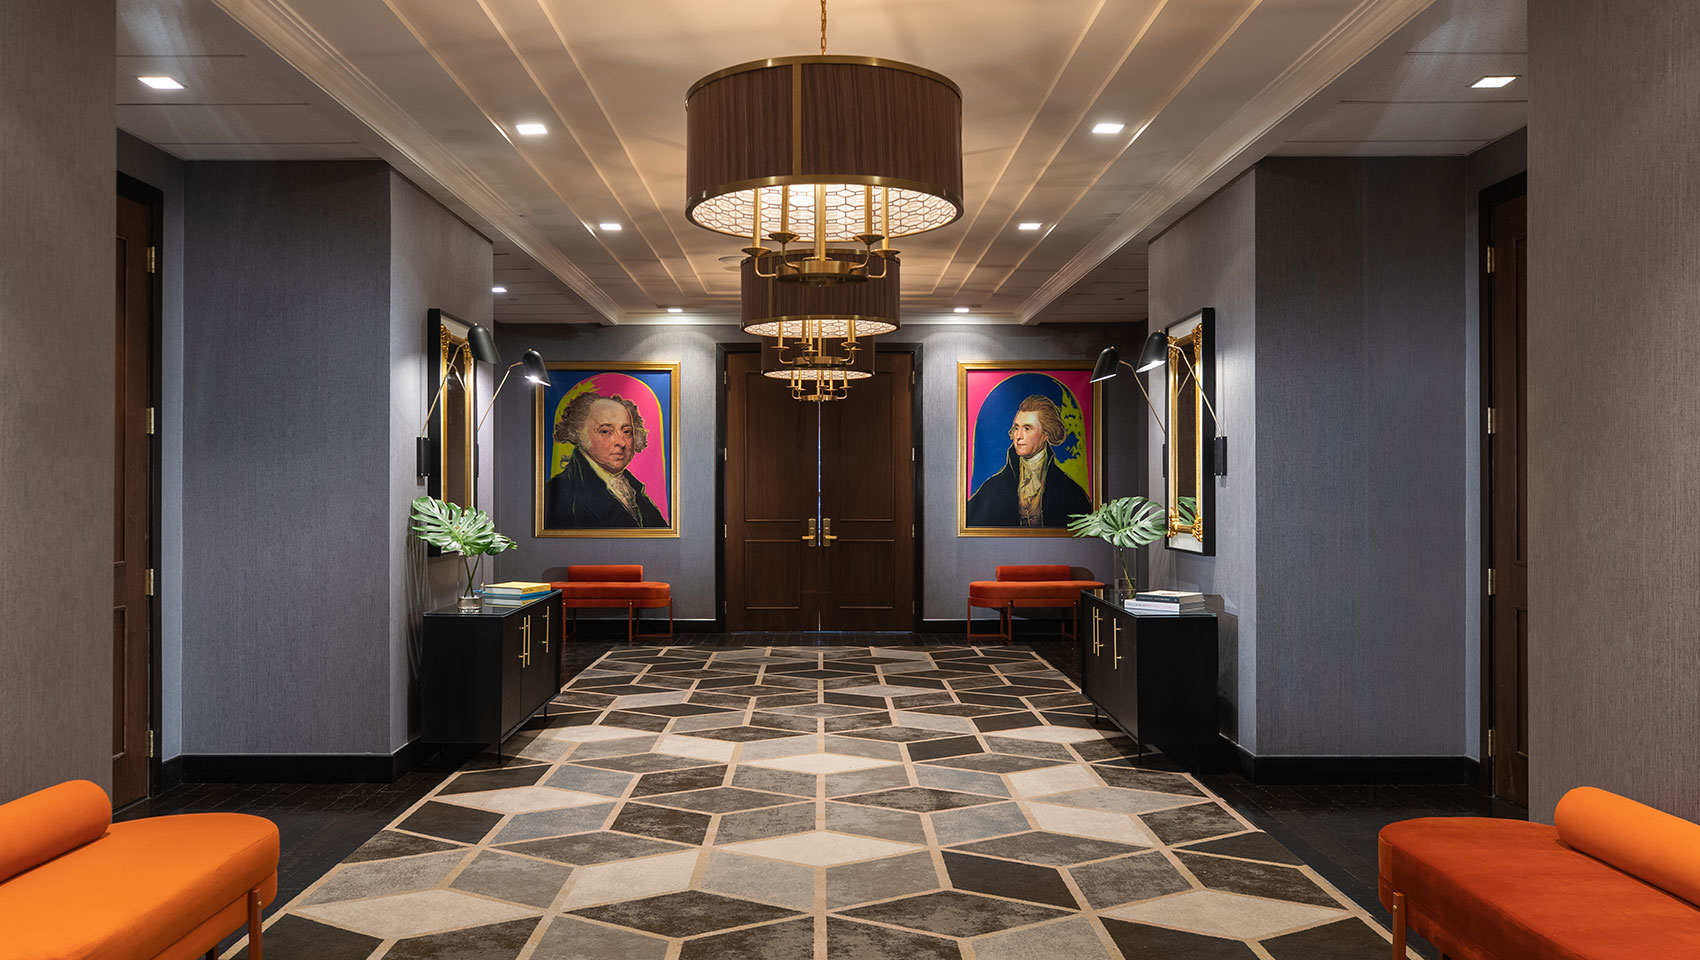 Kimpton Hotel Palomar Philadelphia 24th floor meeting + event foyer area showing geometric carpet in open area, brightly colored plush seating, and a series of circular lighting fixtures